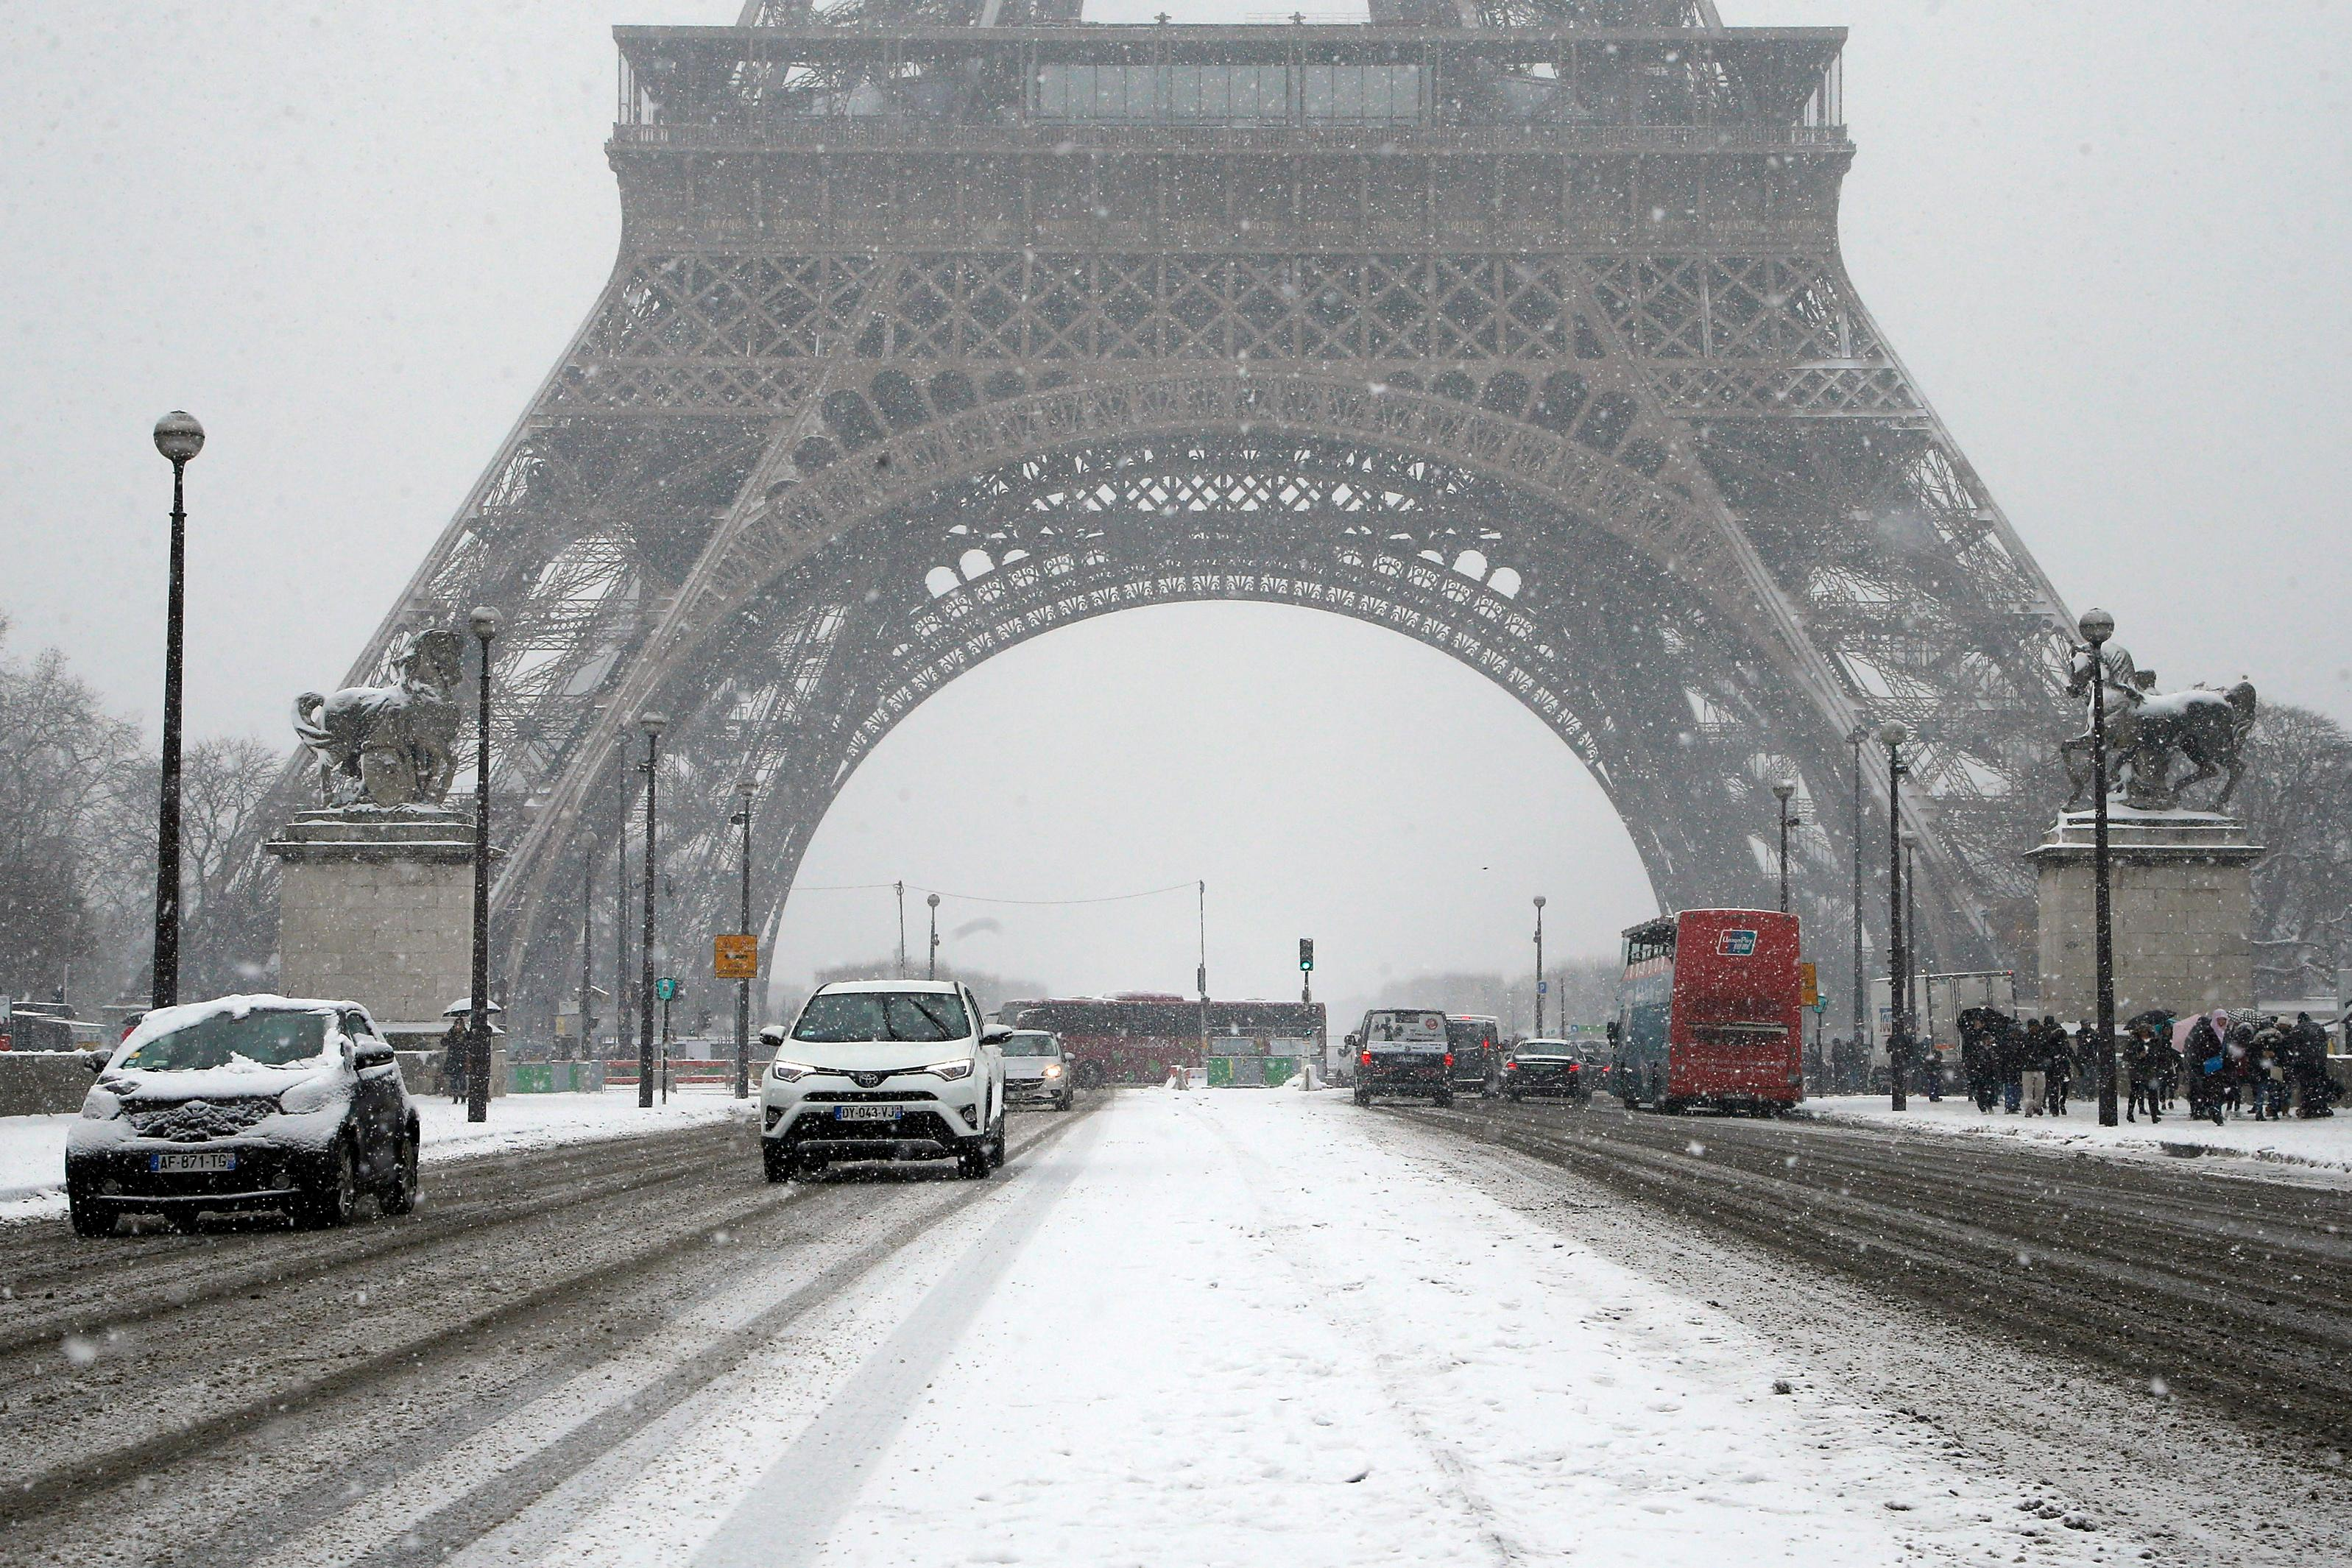 Cars drive over Iena bridge during a snowfall in Paris, France, Friday, Feb. 9, 2018. The Eiffel Tower is closed and authorities are telling drivers in the Paris region to stay home as snow and freezing rain have hit a swath of France ill-prepared for the wintry weather. (AP Photo/Michel Euler)